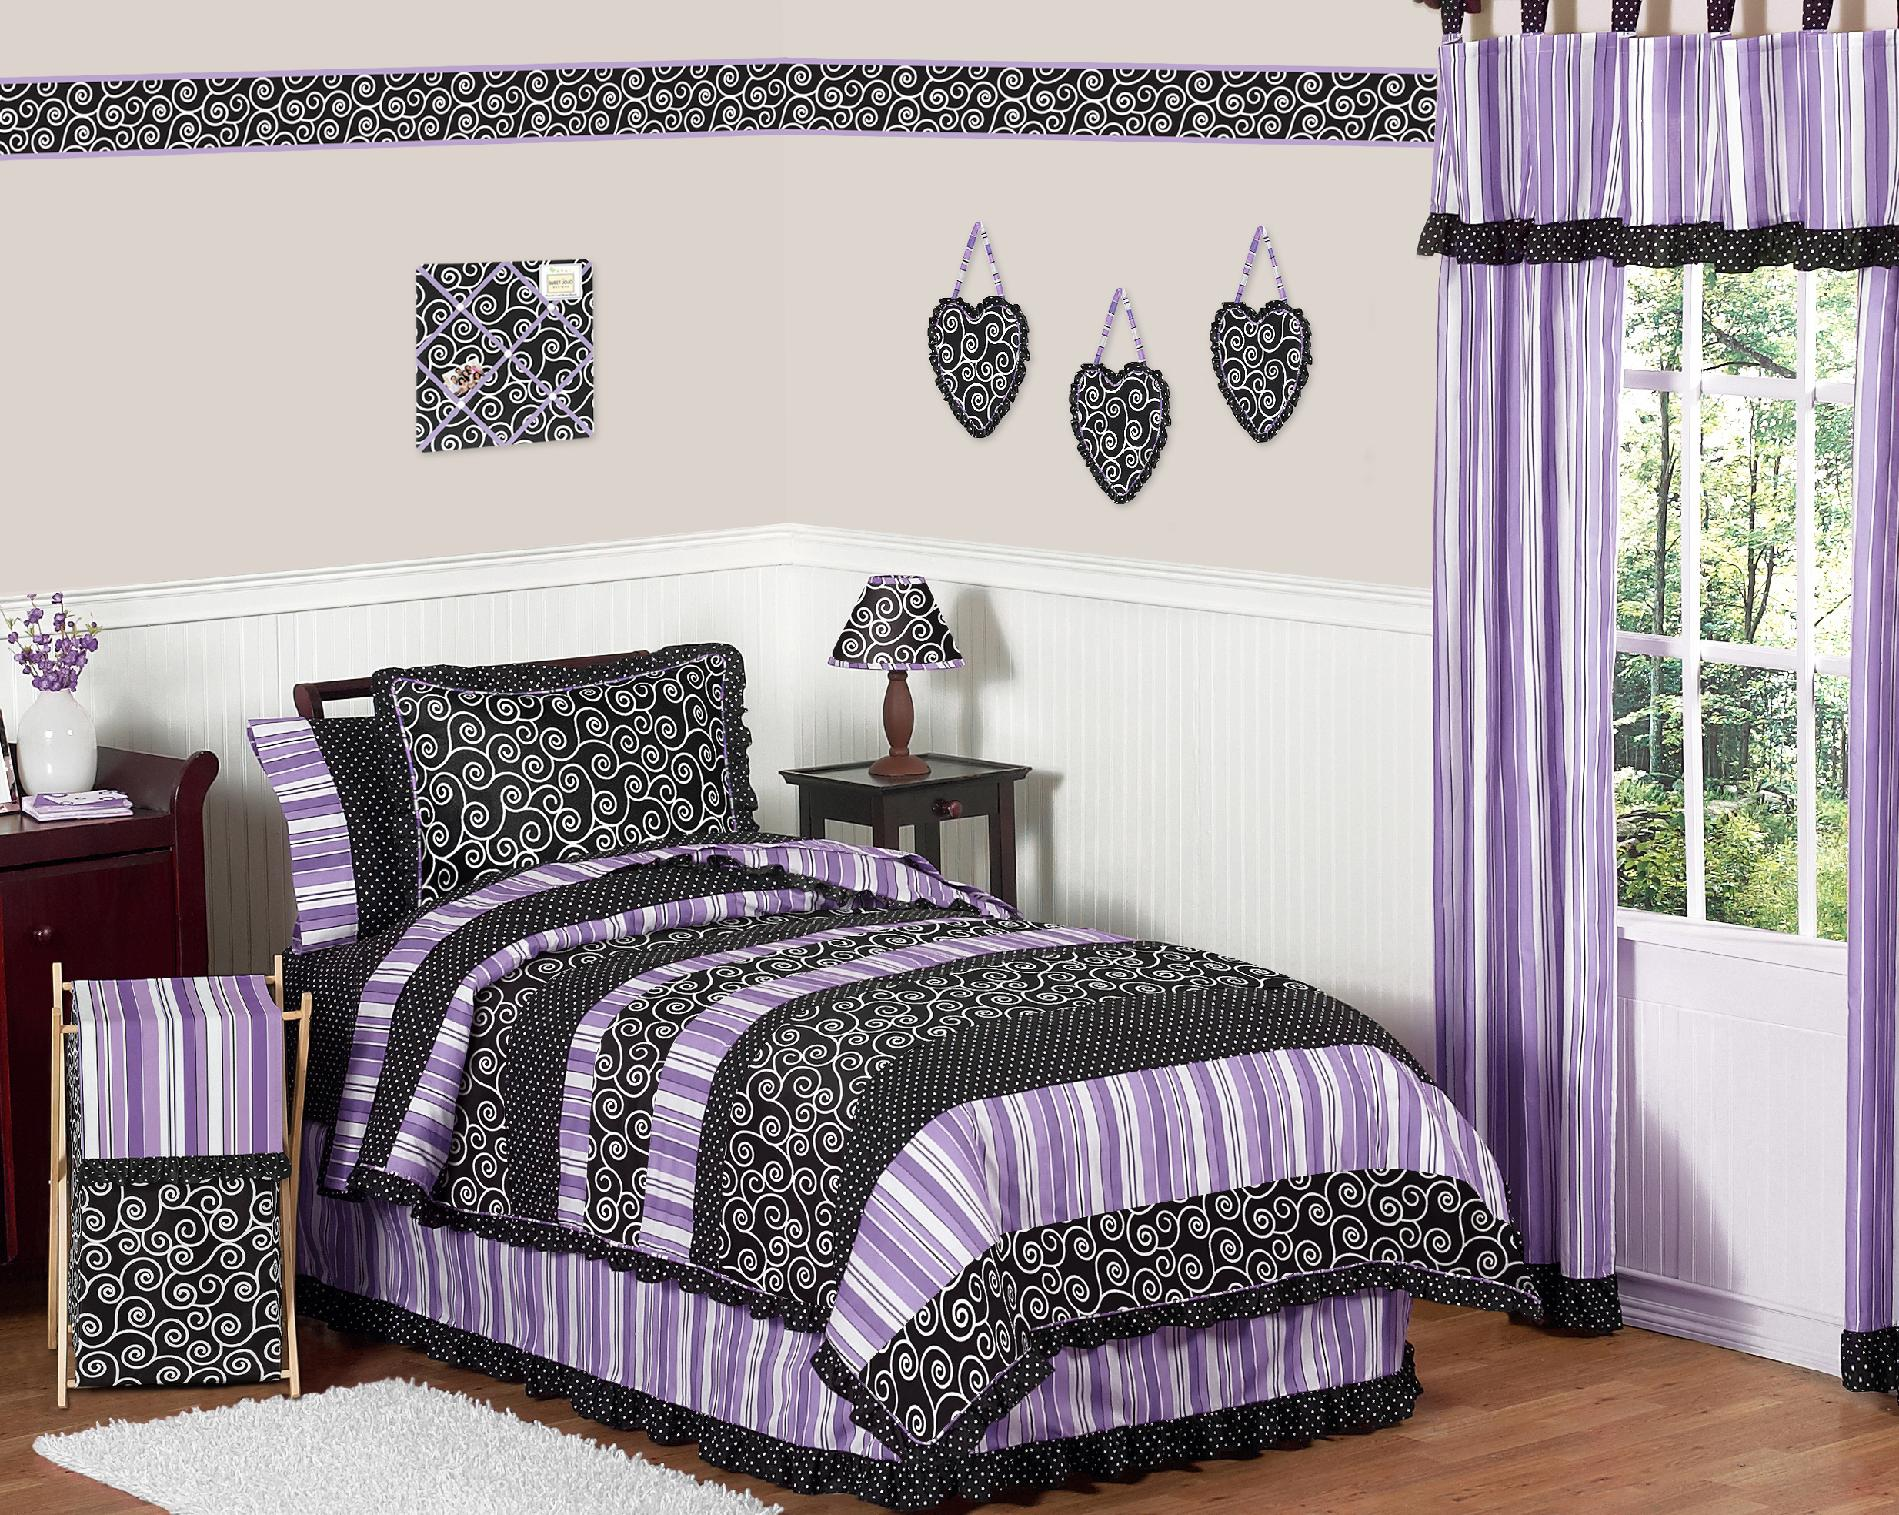 Sweet Jojo Designs Kaylee Collection 3pc Full/Queen Bedding Set